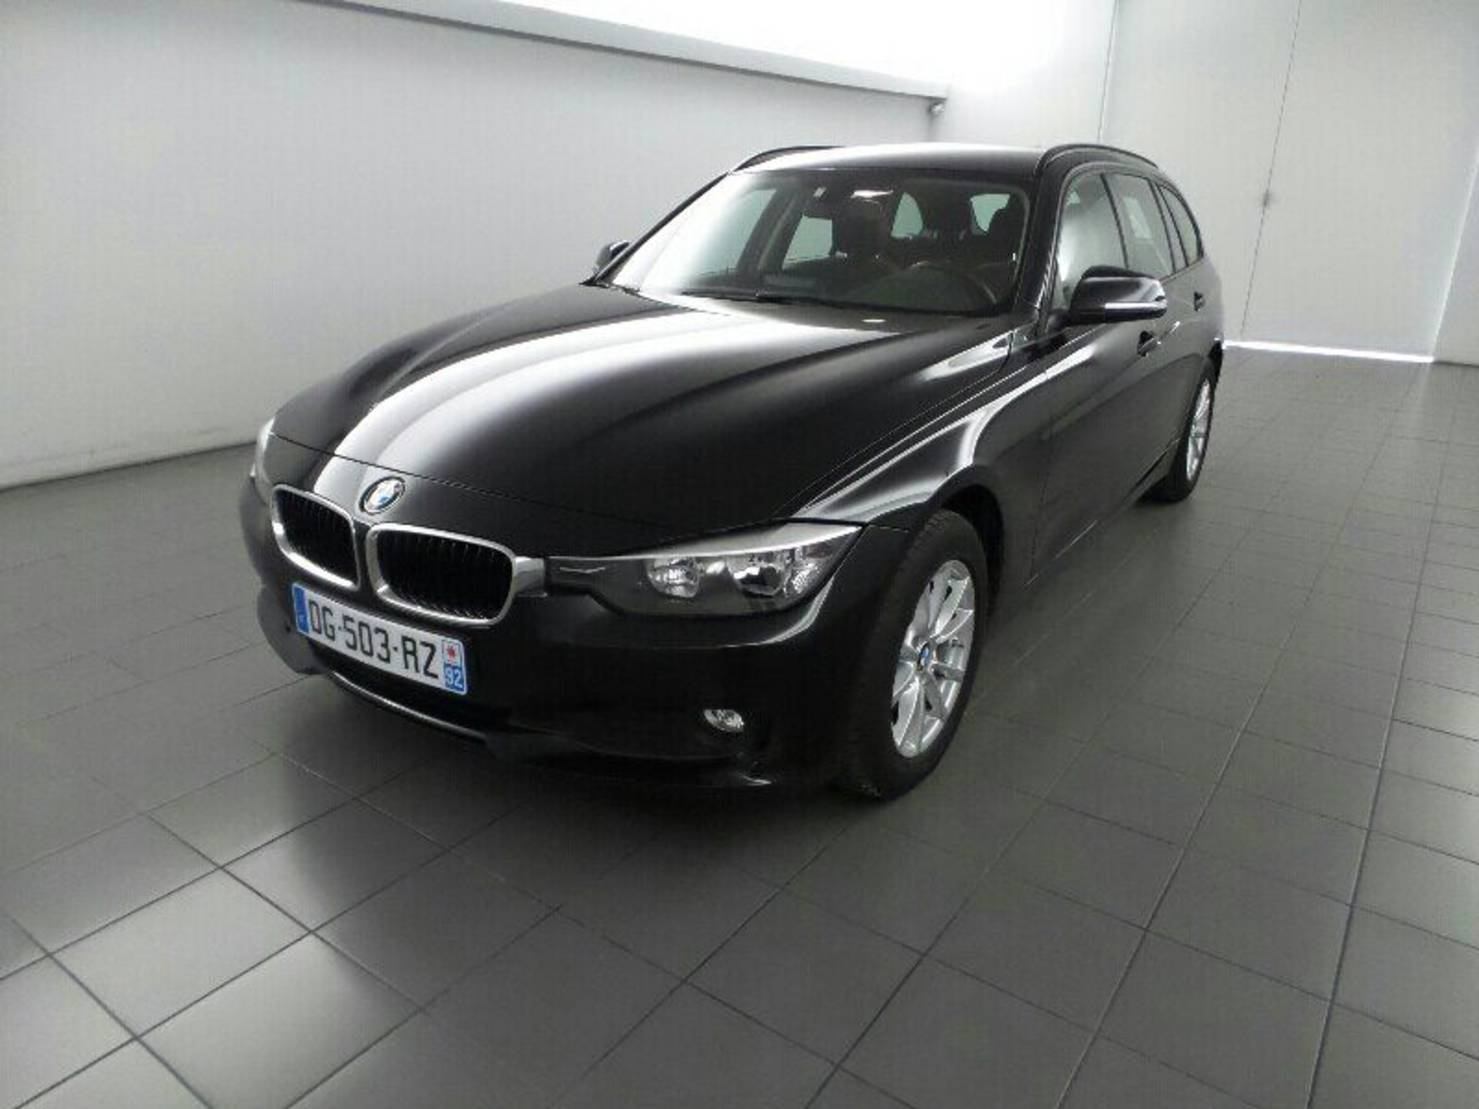 BMW 3 Serie Touring 316d 116 ch 119 g, Business detail1